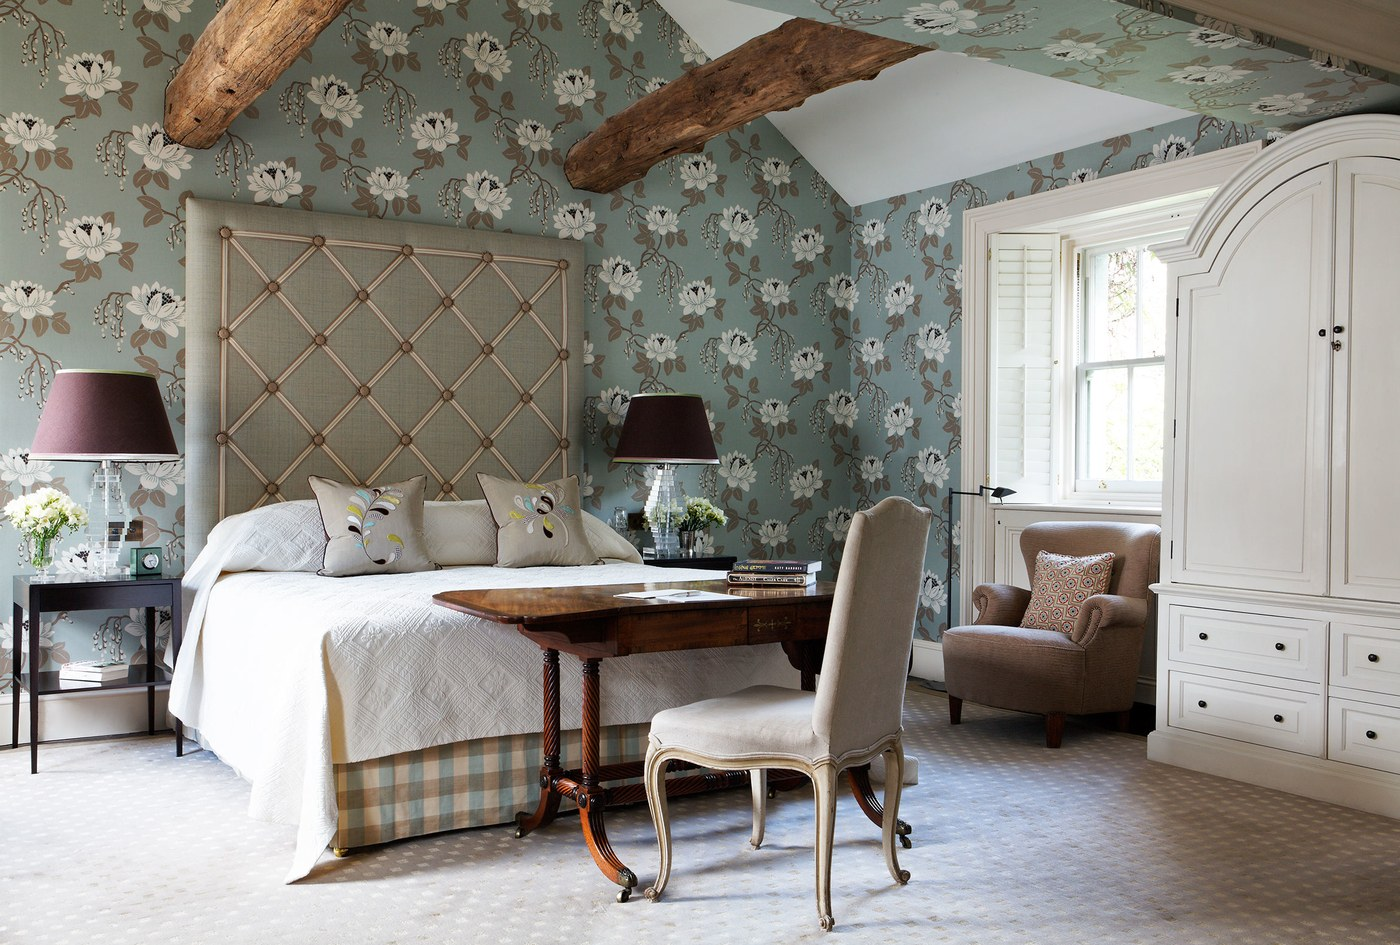 The Best British Interior Designers By AD 100 List – I Part alidad Bedroom ad100 list The Leading British Interior Designers By AD100 List – Part I The Best British Interior Designers By AD100 List     II Part alidad Bedroom